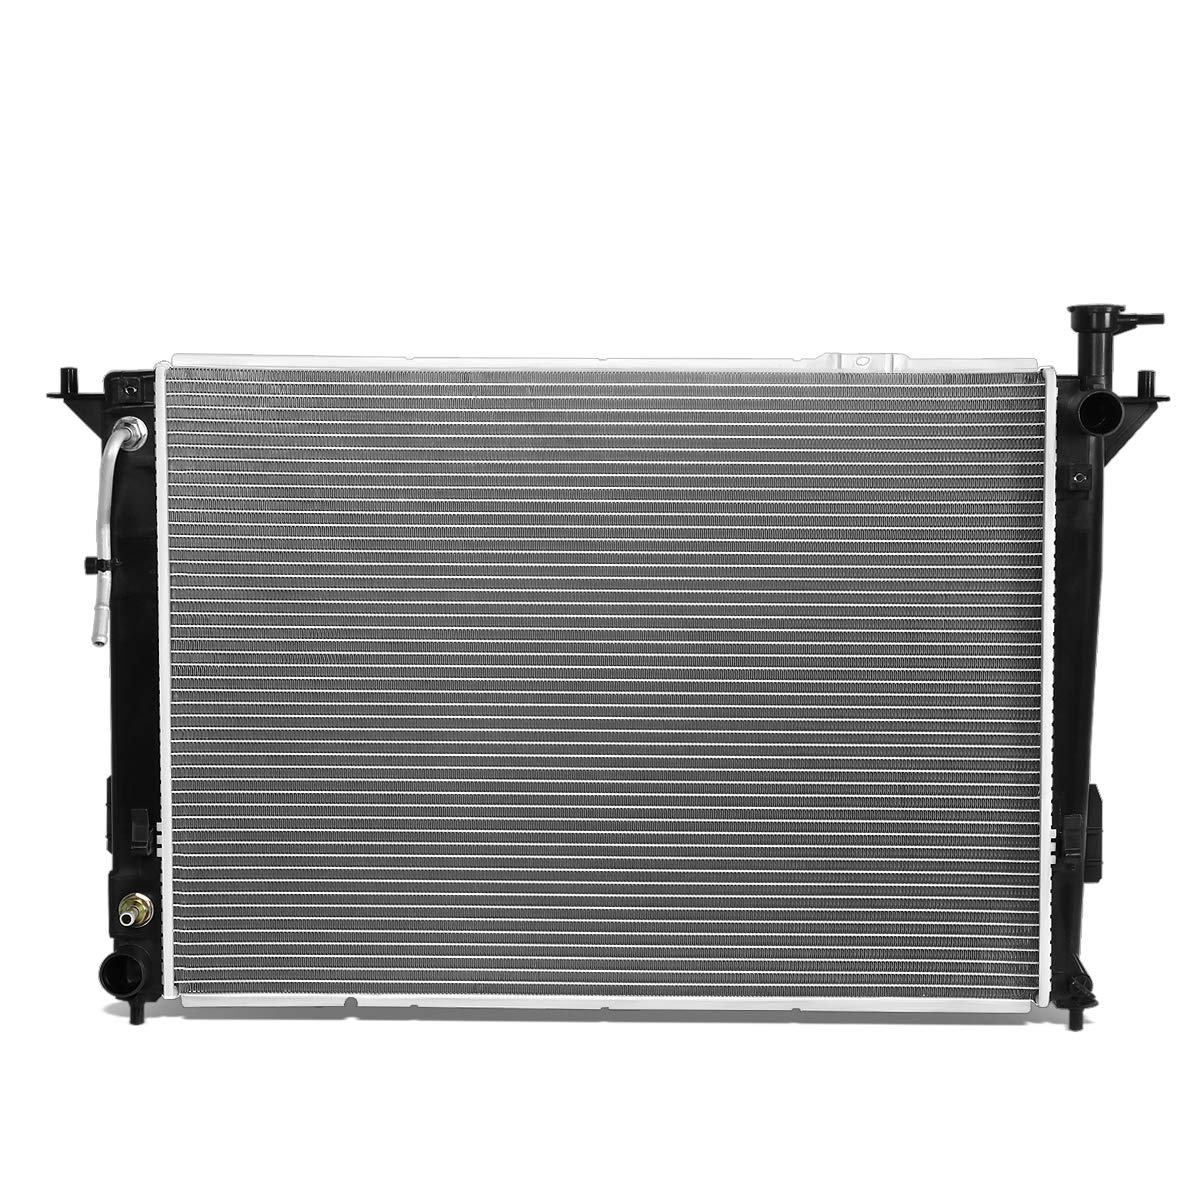 DNA Motoring OEM-RA-13194 13194 OE Style Aluminum Cooling Radiator Replacement